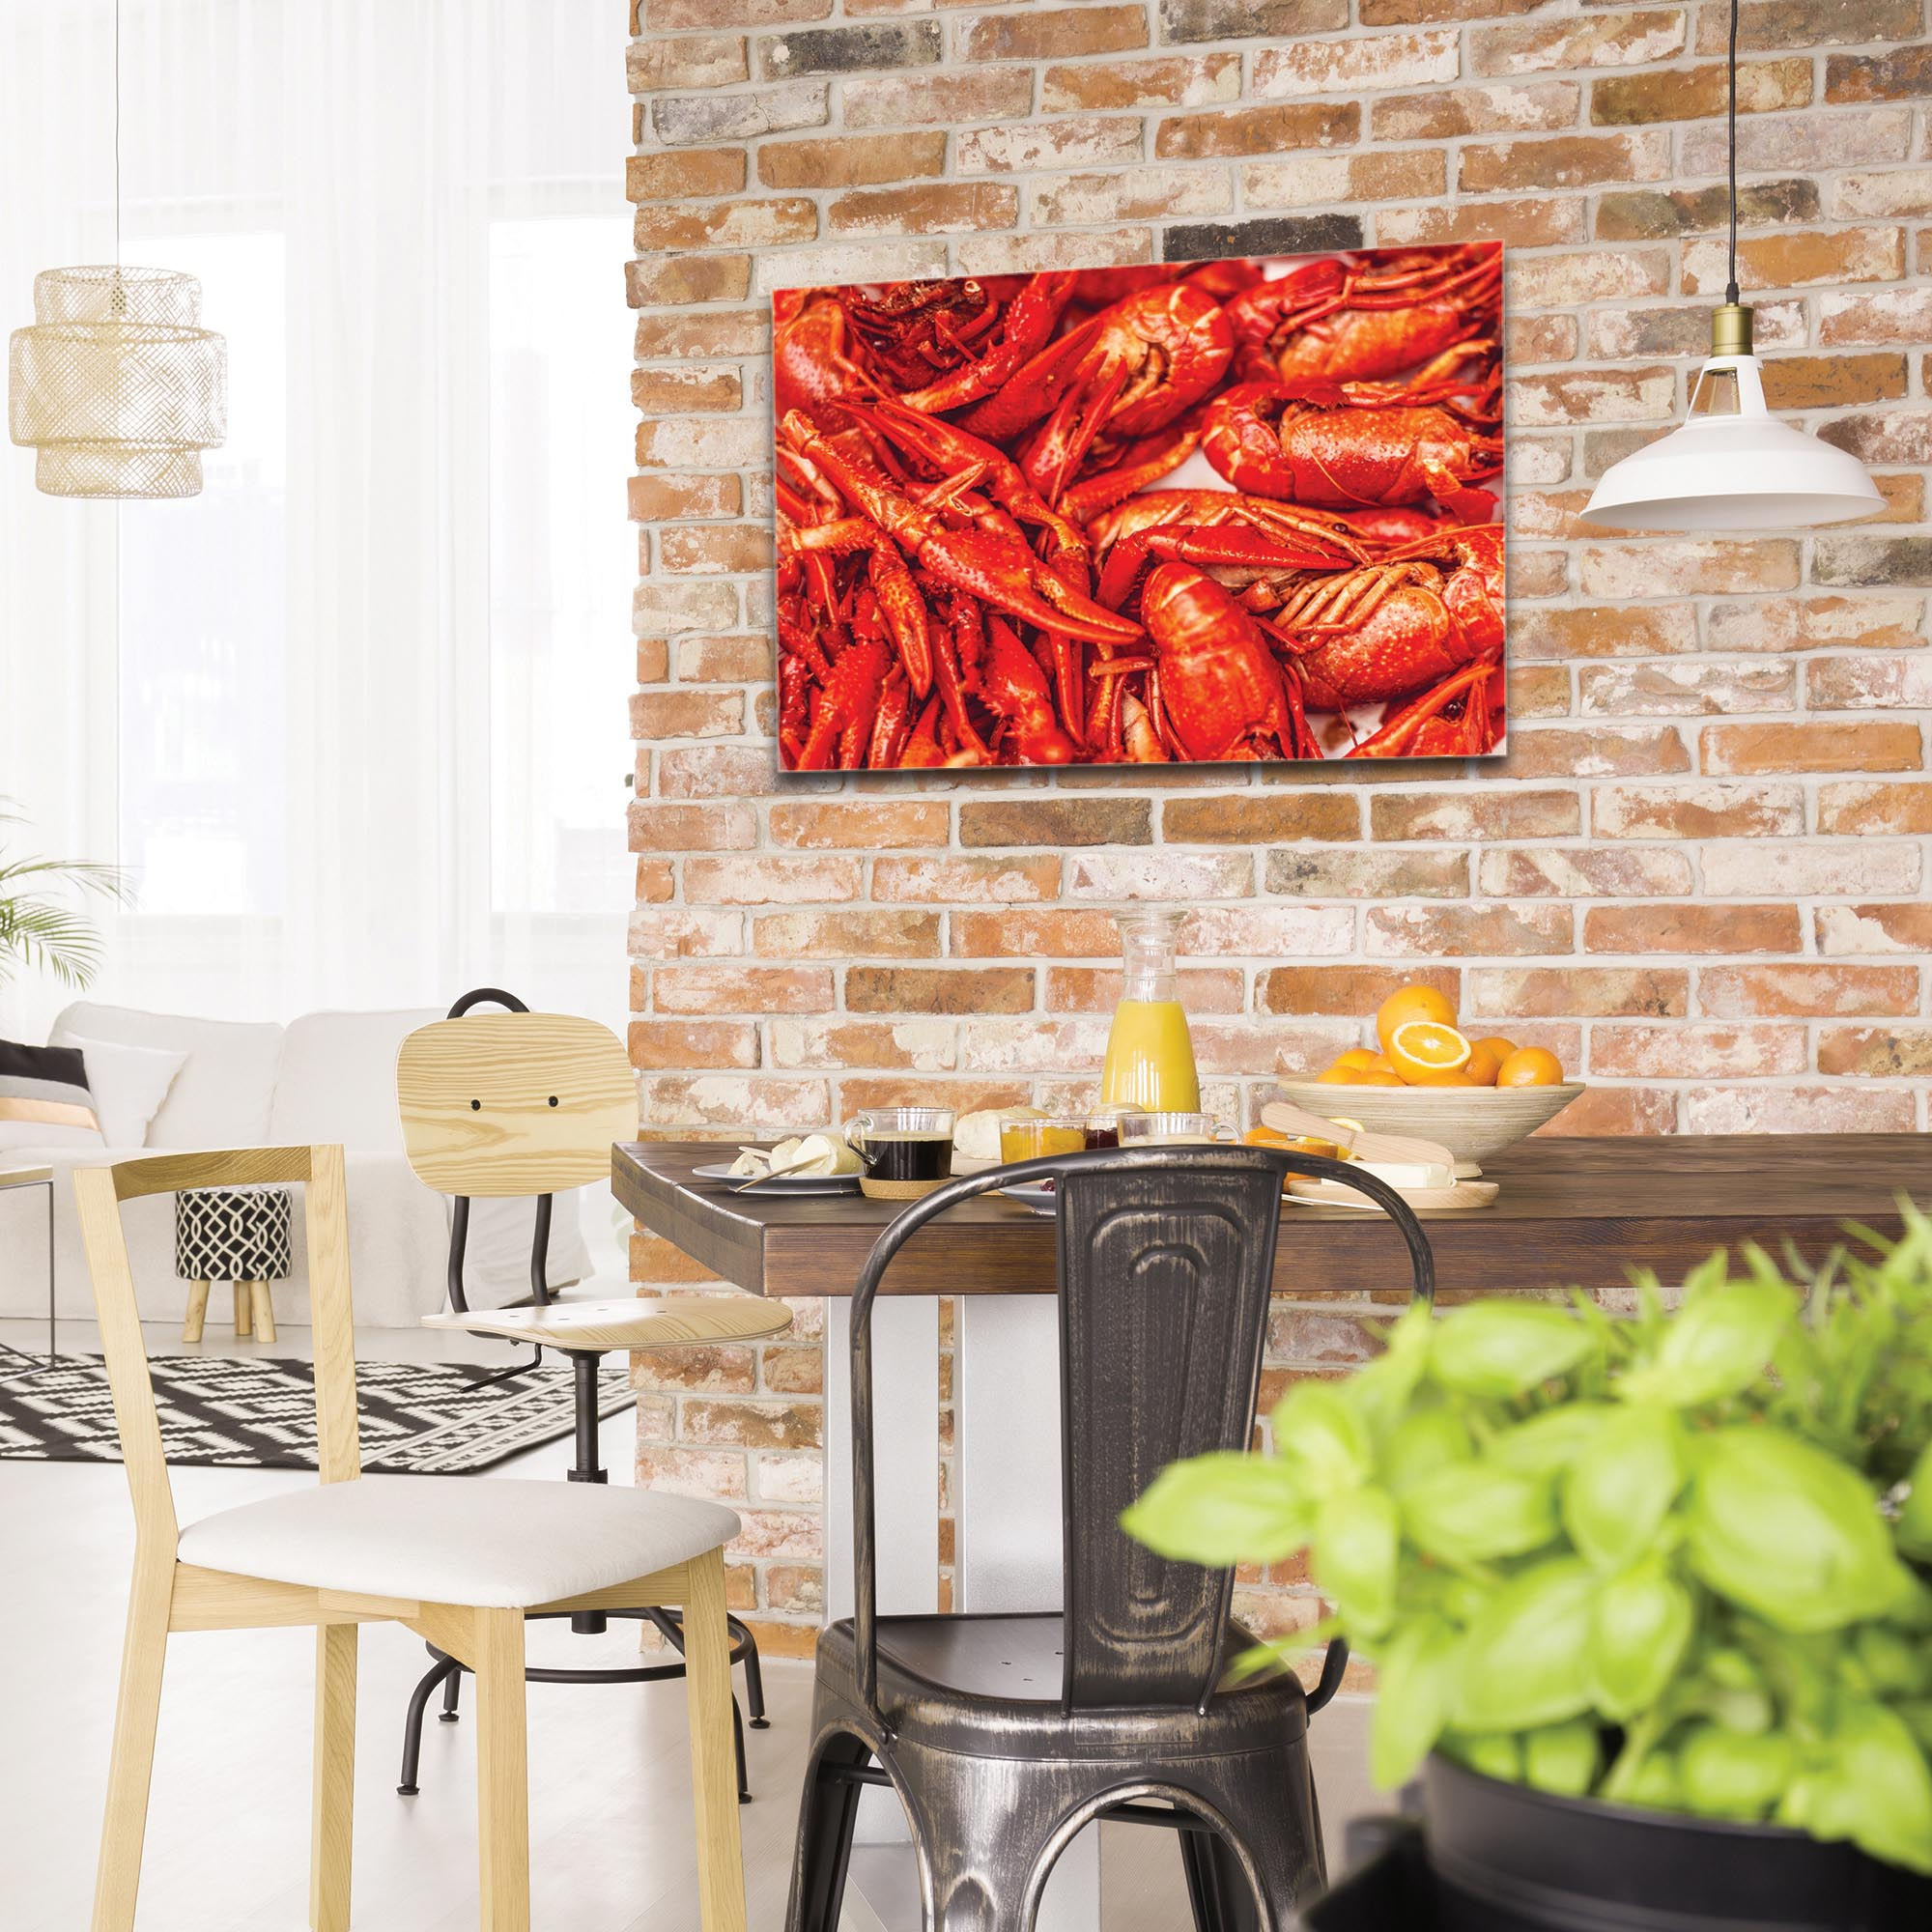 Coastal Wall Art 'Crawfish Supper' - Crayfish Boil Decor on Metal or Plexiglass - Image 3